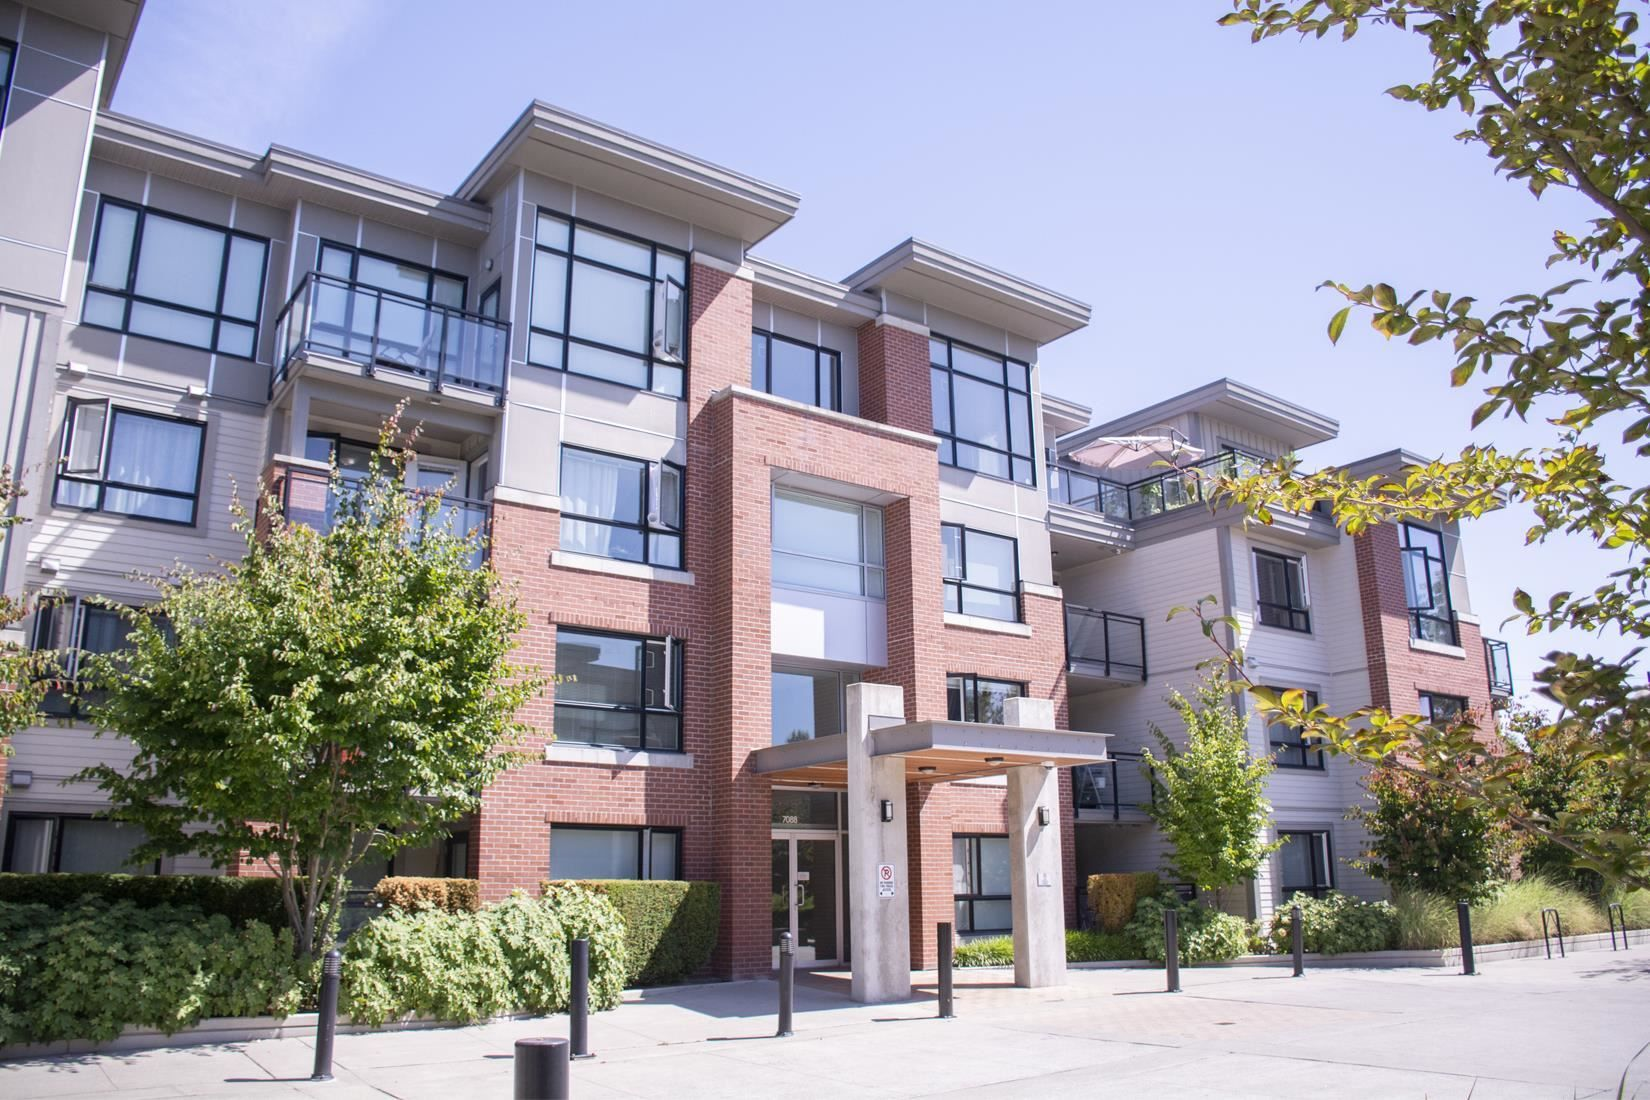 """Main Photo: 104 7088 14TH Avenue in Burnaby: Edmonds BE Condo for sale in """"Red Brick"""" (Burnaby East)  : MLS®# R2607521"""